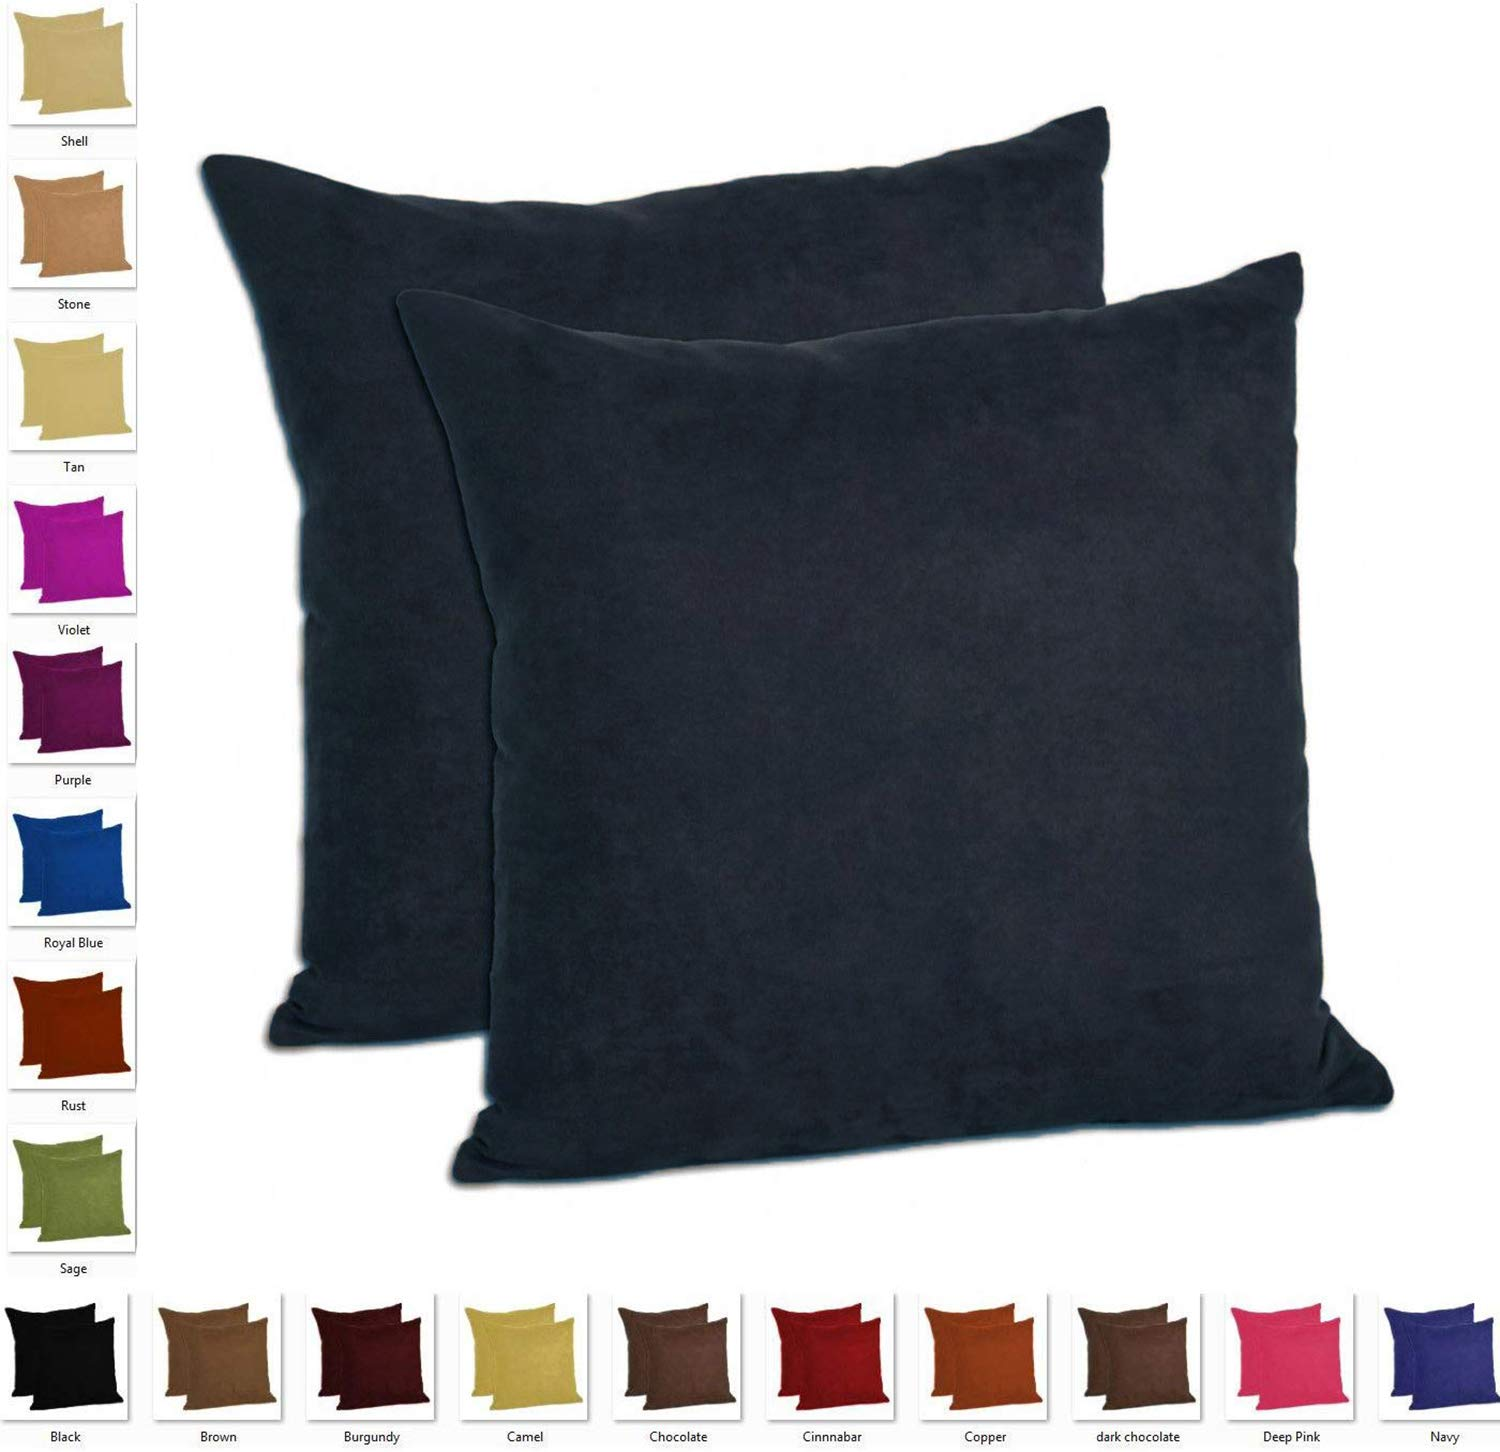 MoonRest - Set of 2 Microfiber Decorative Pillow, Fully Assembled with Hidden Zipper Filled with Synthetic Down Pillow Inserts (18